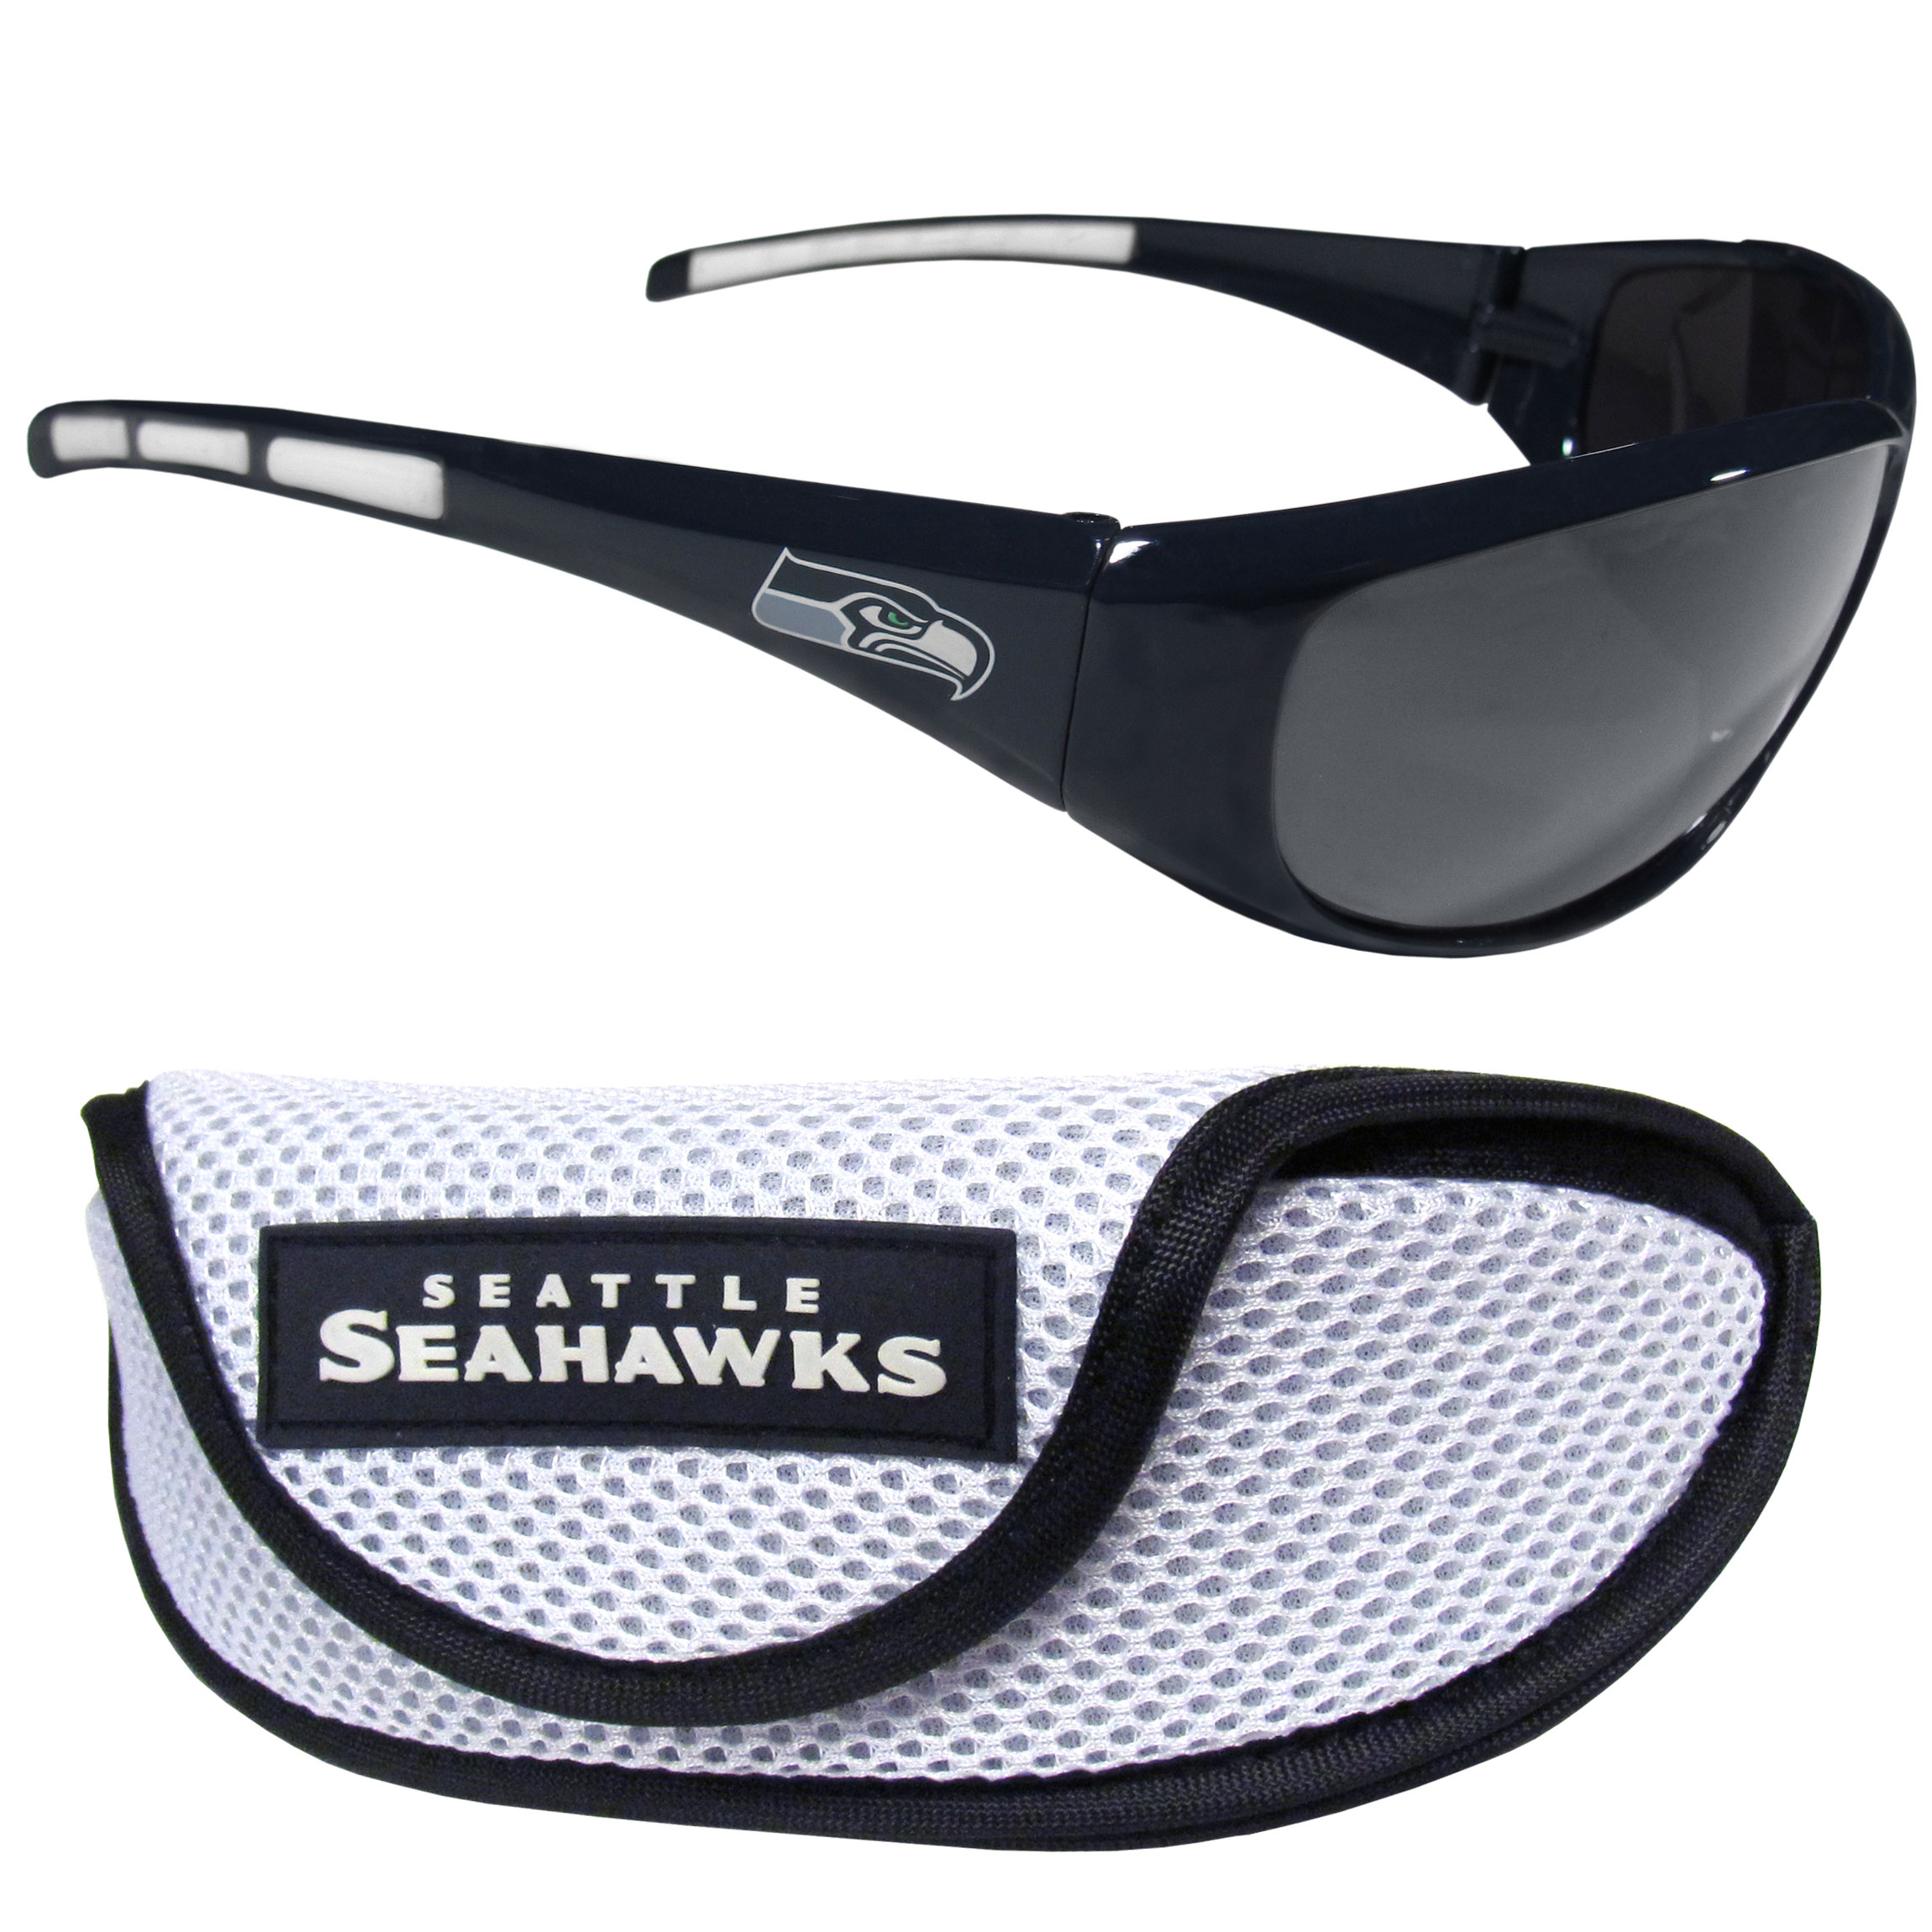 Seattle Seahawks Wrap Sunglass and Case Set - This great set includes a high quality pair of Seattle Seahawks wrap sunglasses and sport carrying case.